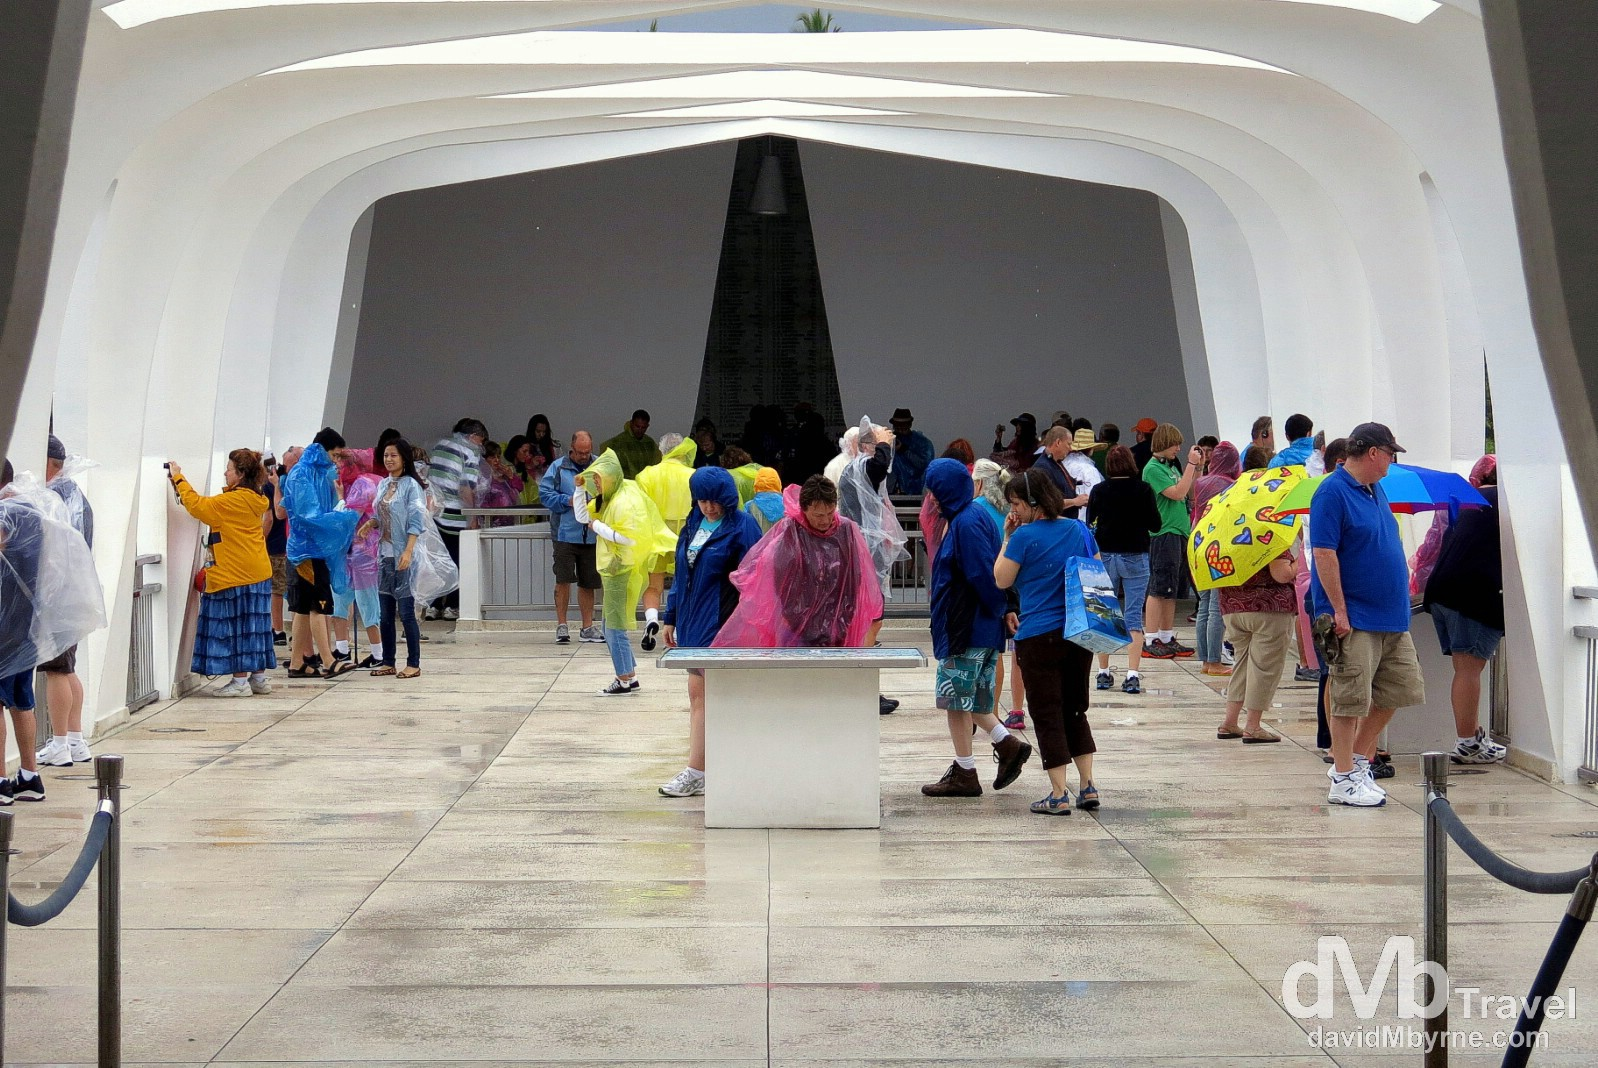 Windswept & wet inside the USS Arizona Memorial in Pearl Harbour, Oahu, Hawaii, USA. March 10th 2013.